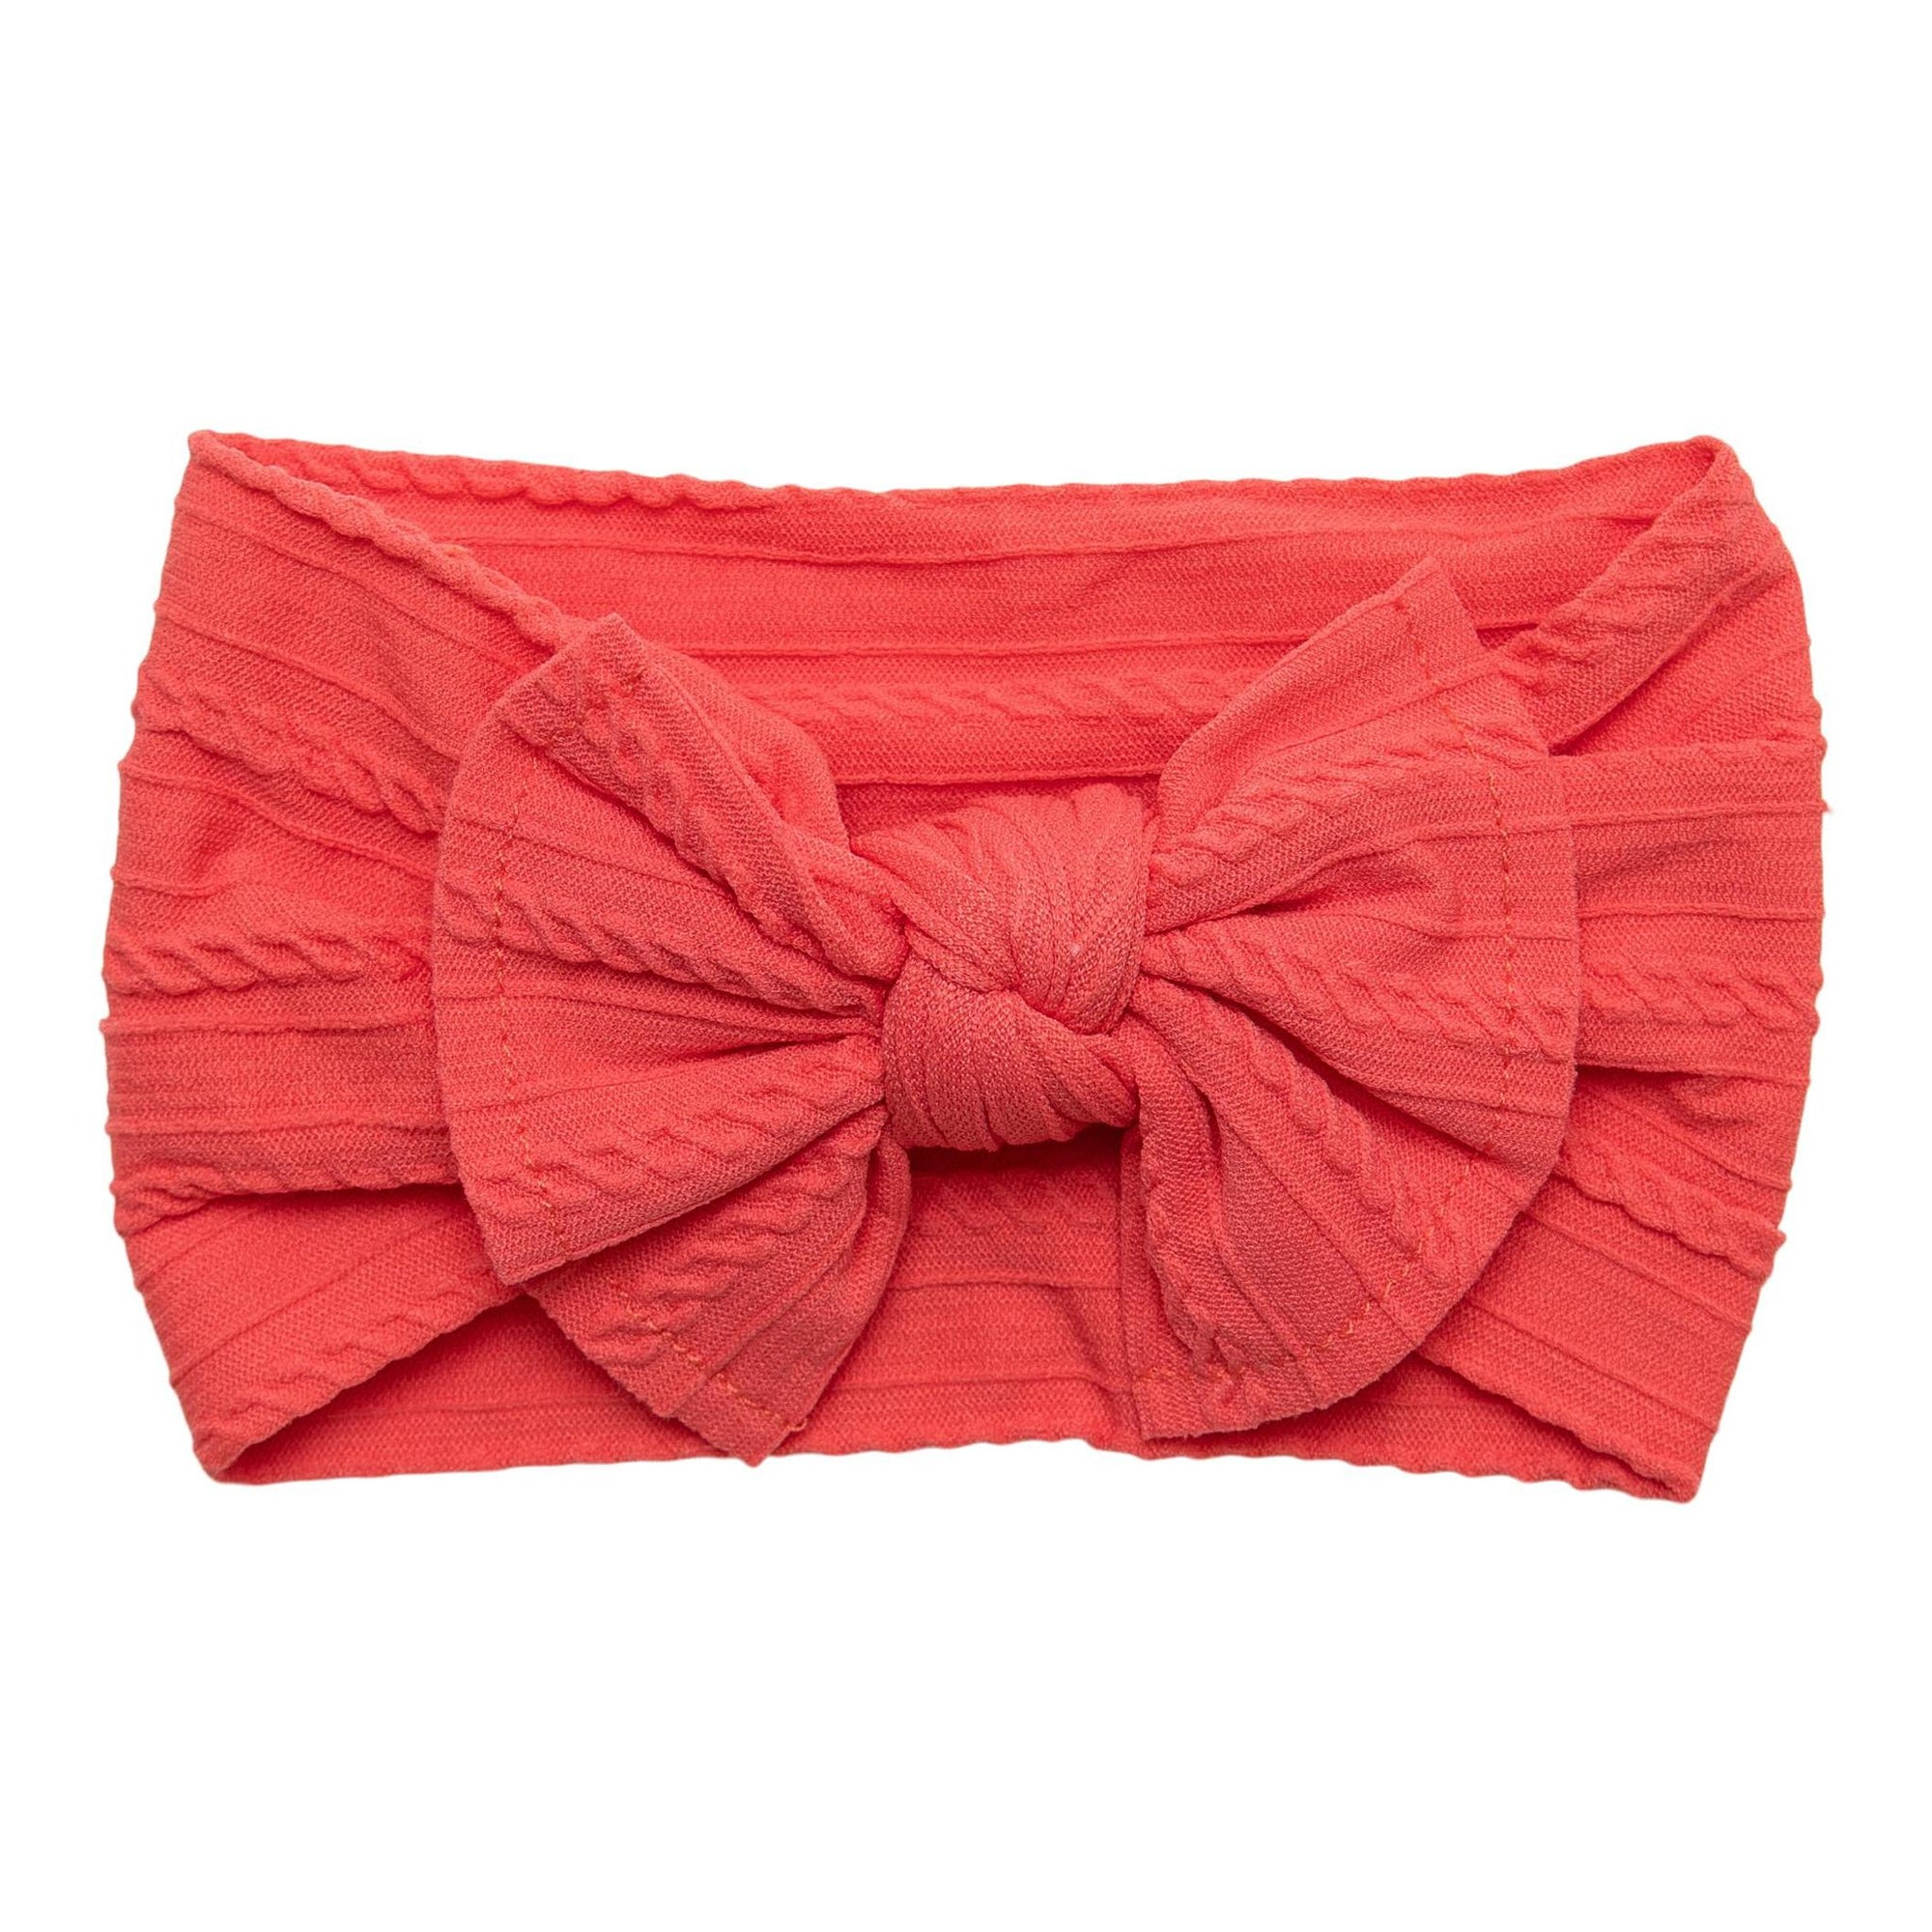 Coral Cable Knit Nylon Headwrap-Mila & Rose ®